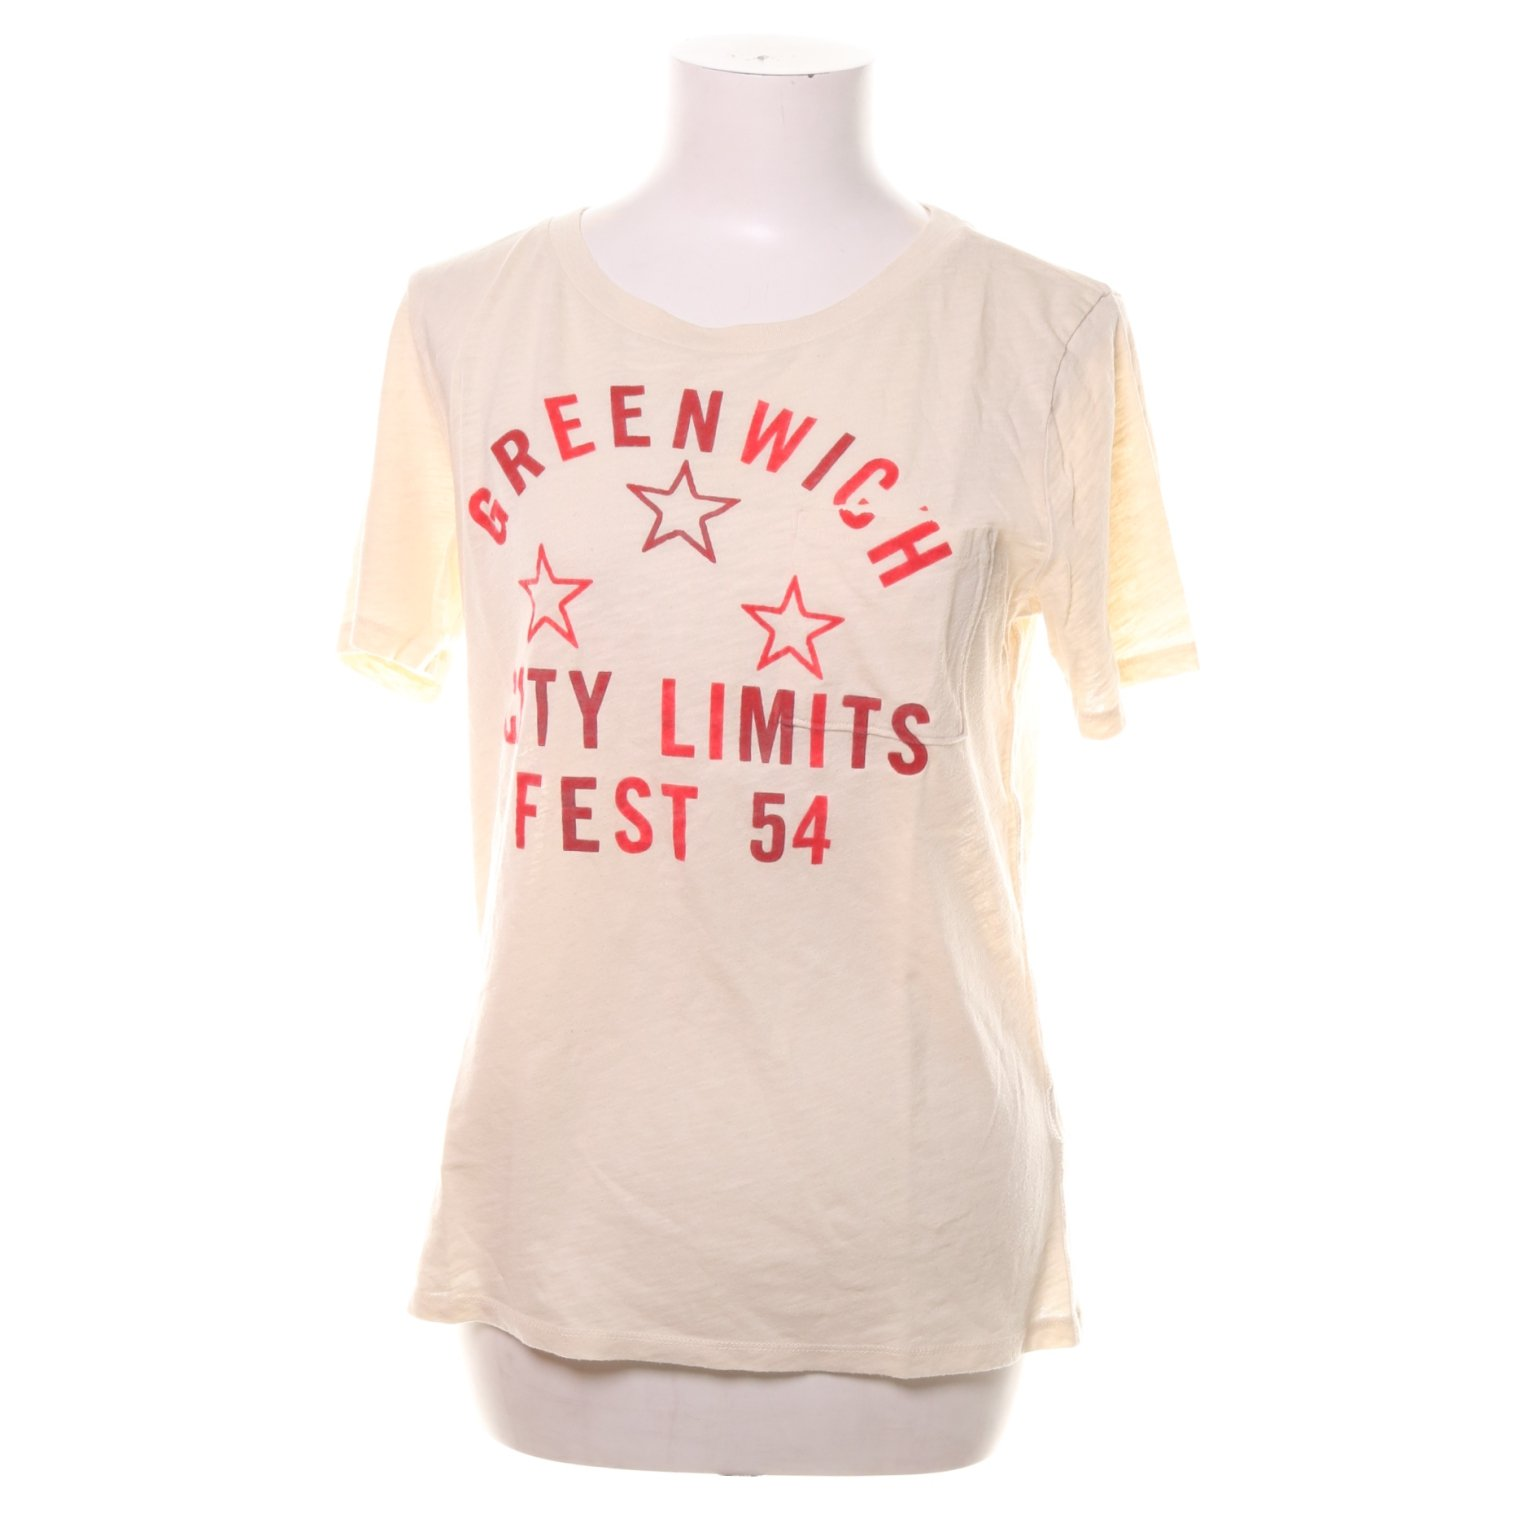 Abercrombie & Fitch, T-shirt, Strl: M, Rosa, Bomull/Polyester